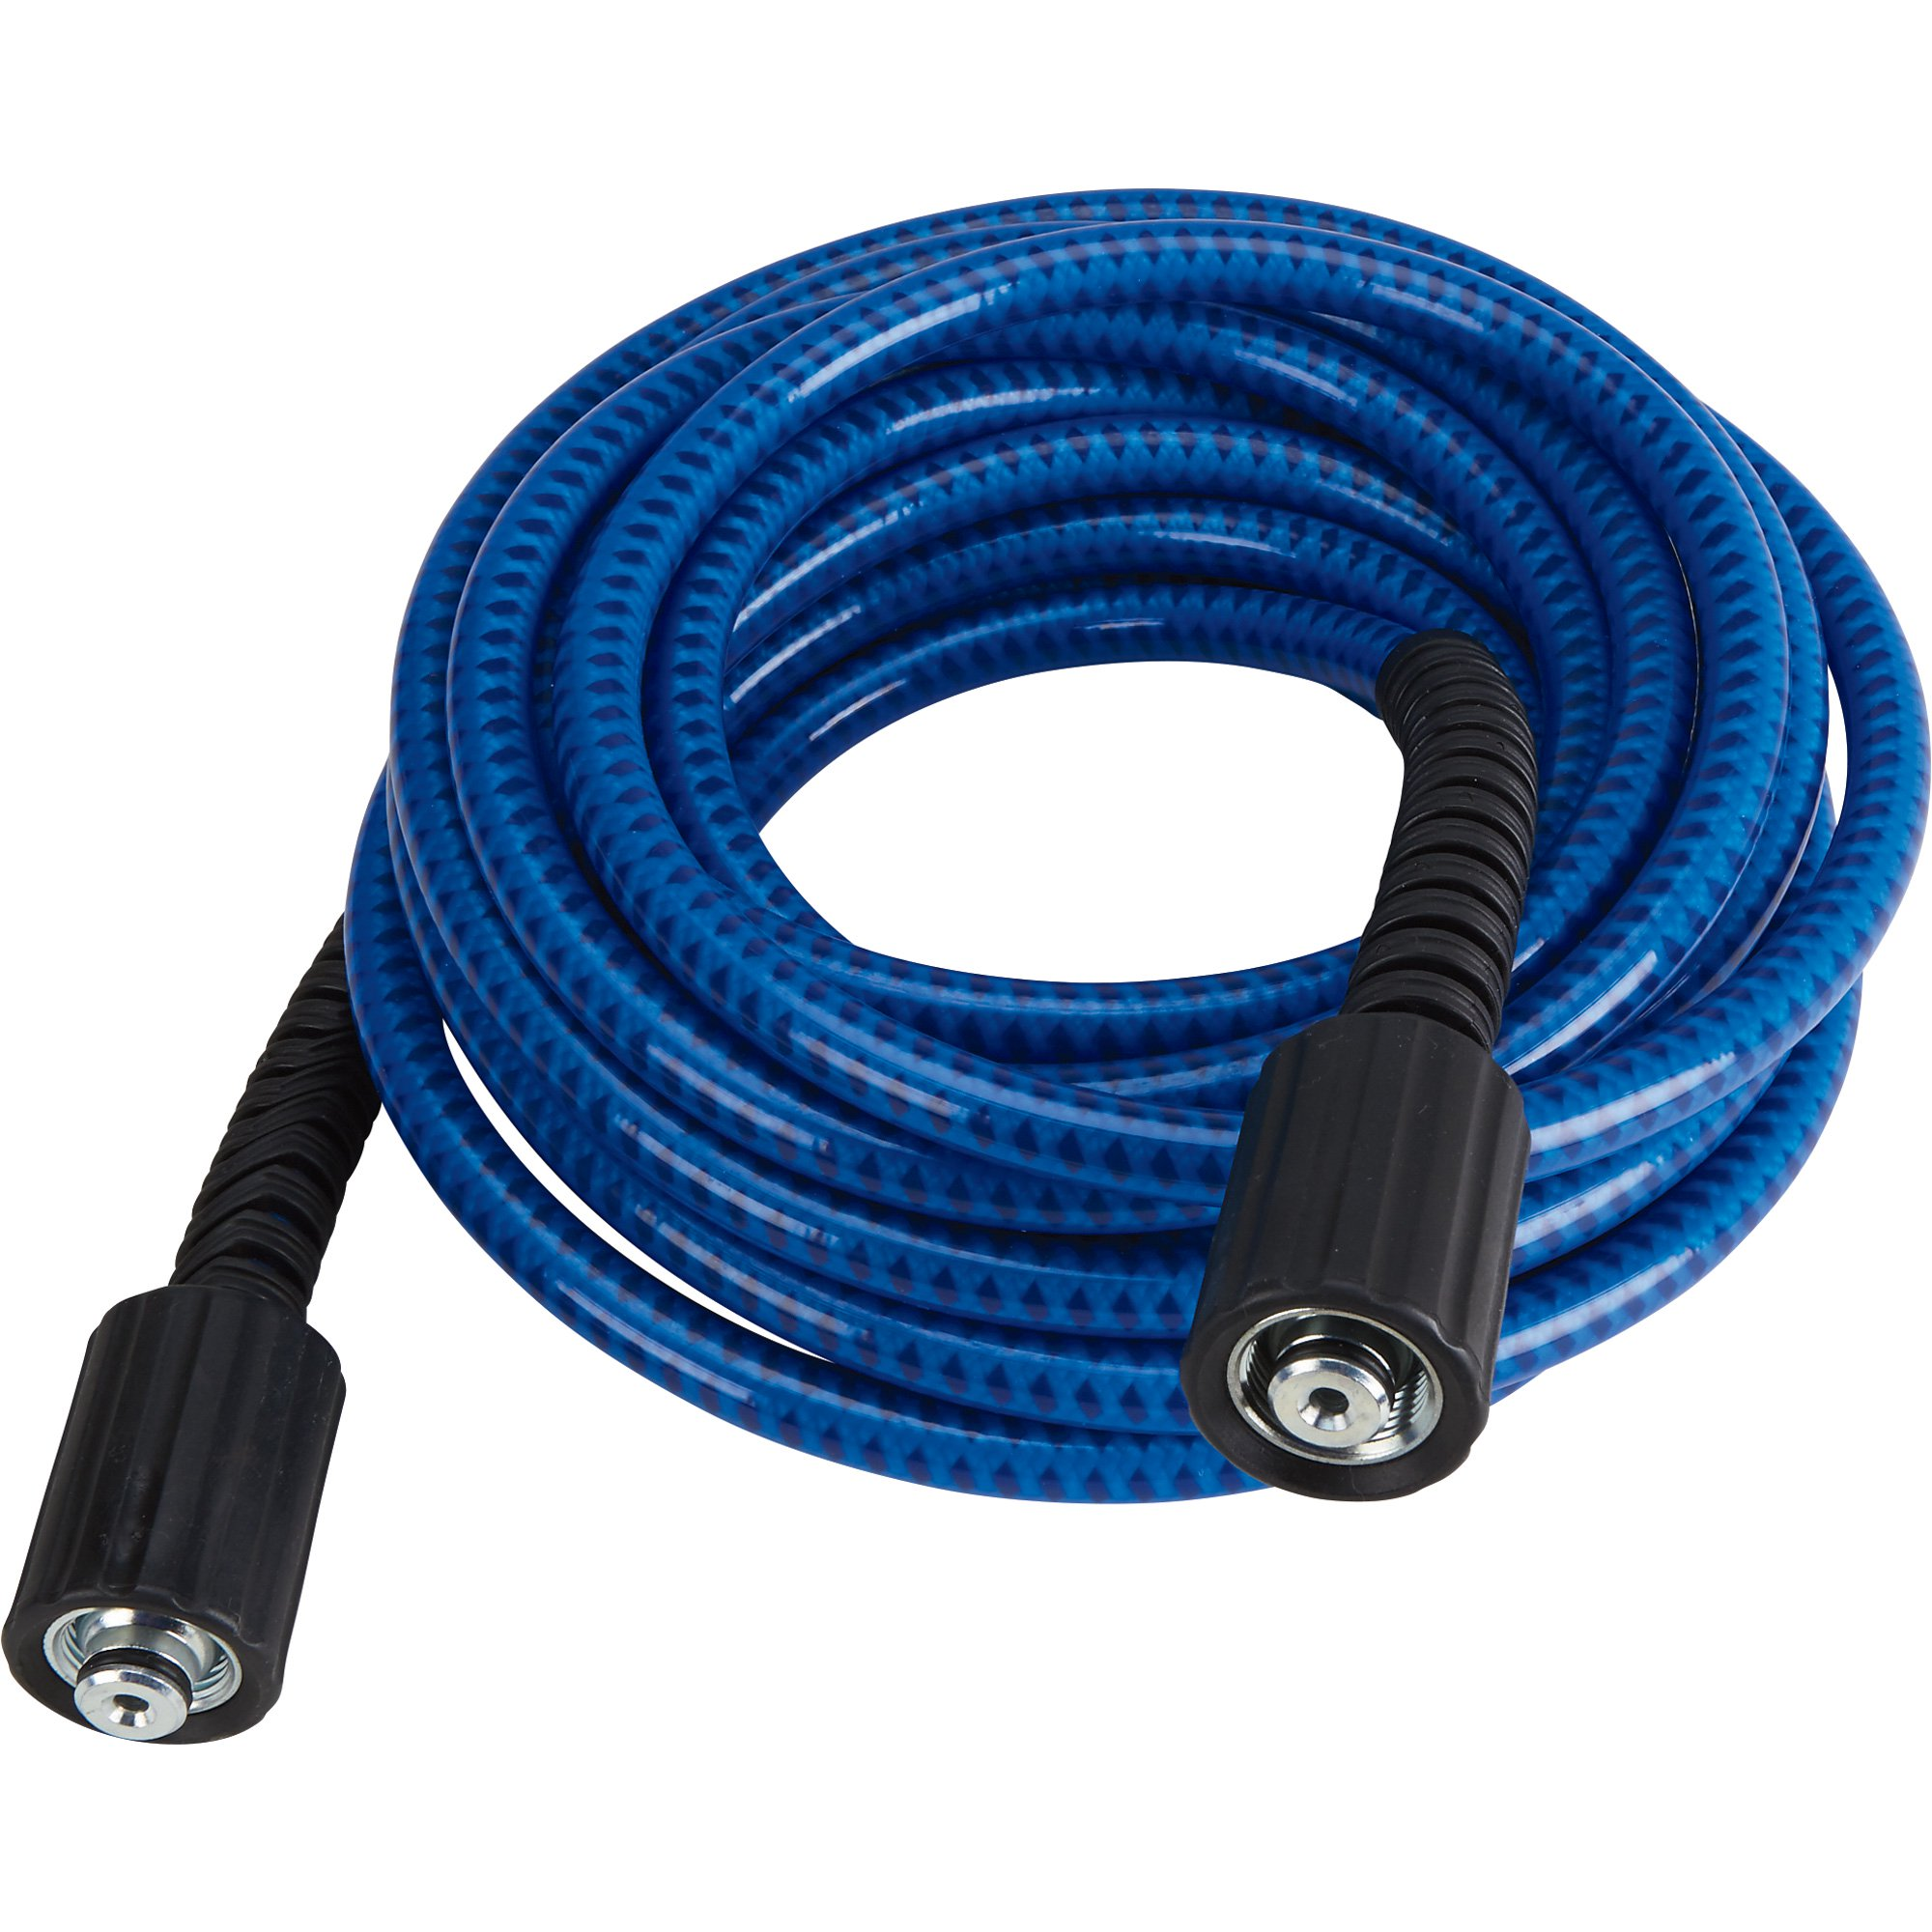 Powerhorse Nonmarking Pressure Washer Hose - 3100 PSI, 25ft. x 1/4in. - 646200513 - 42661